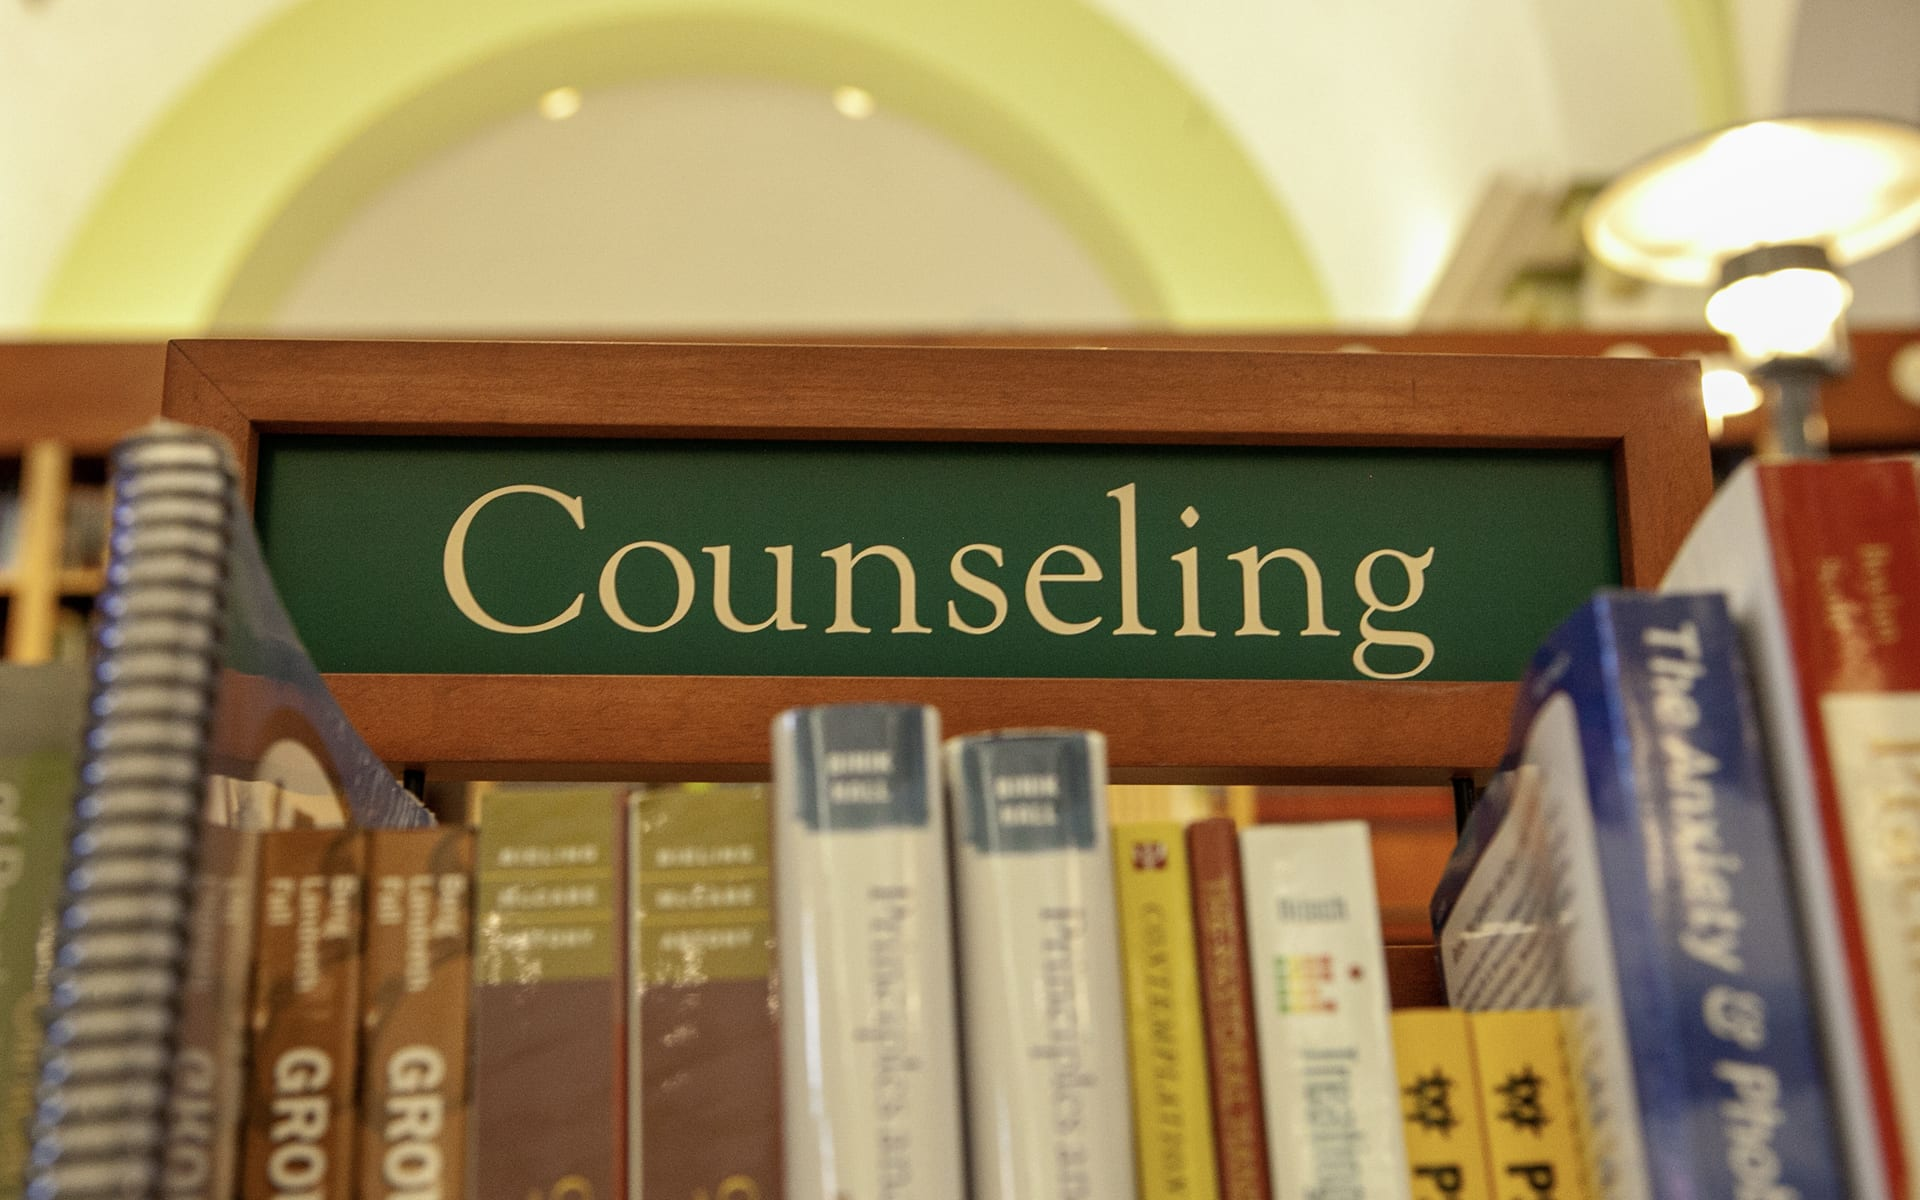 counseling books section in the DTS bookstore